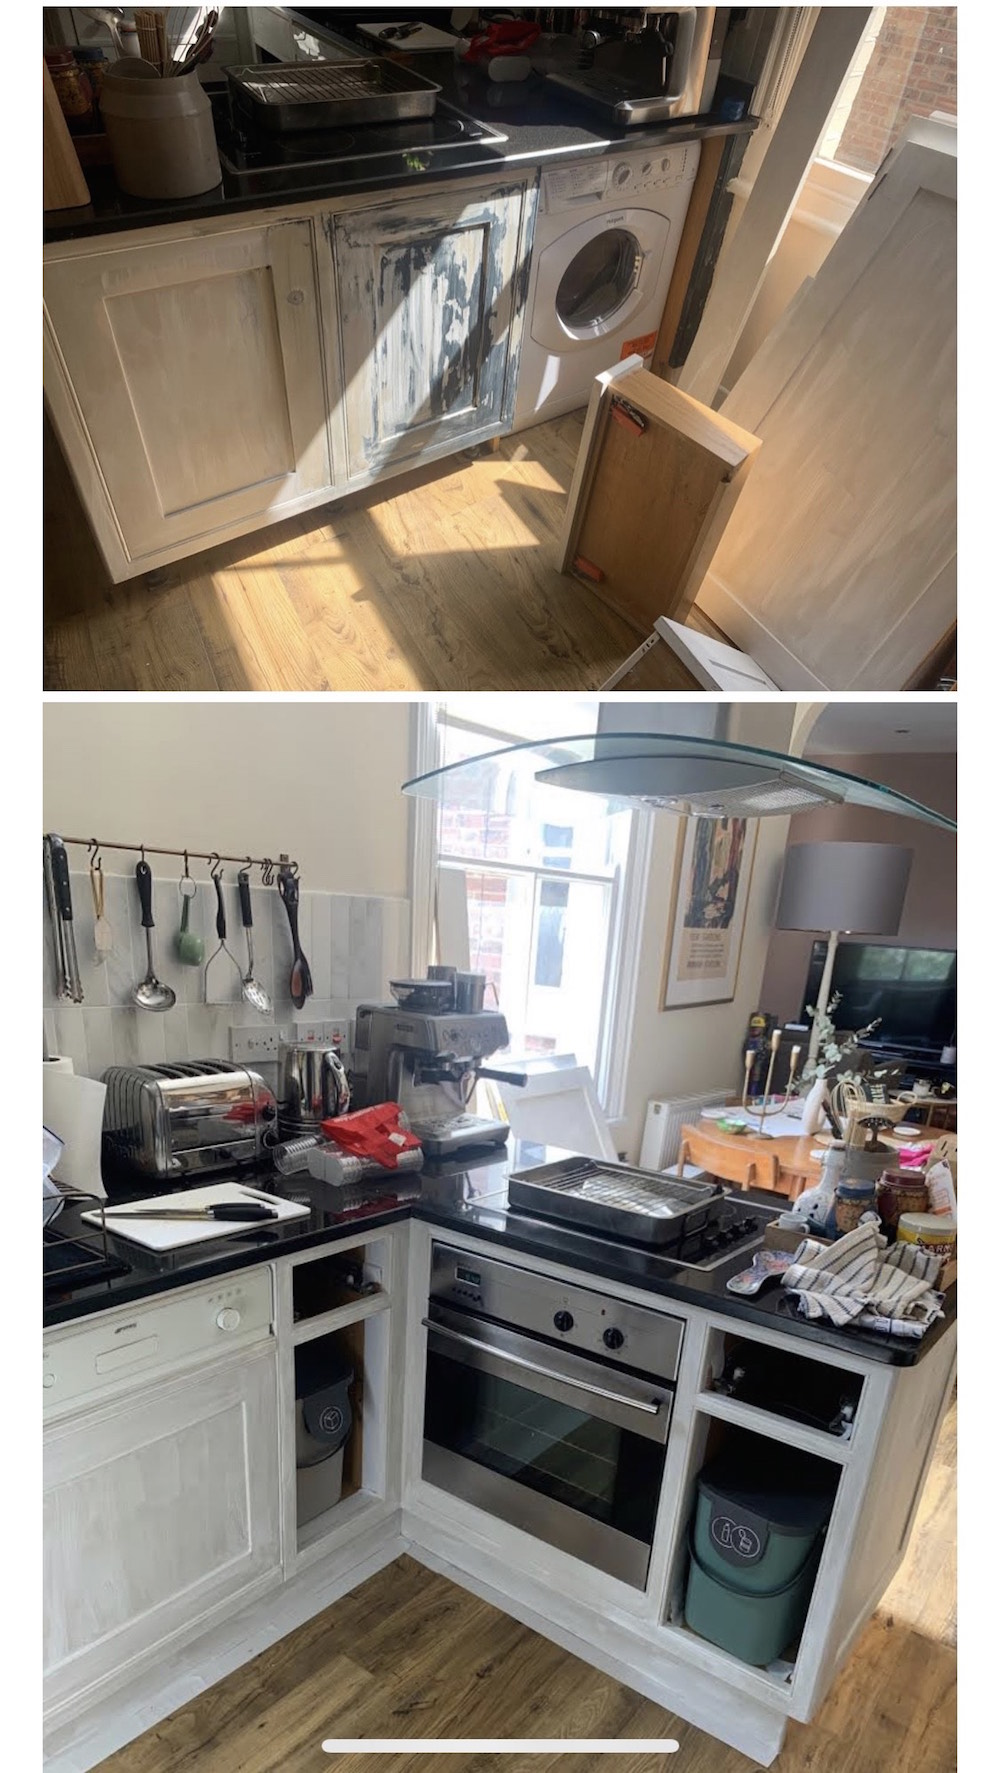 the kitchen in Twickenham was painted by the owners, keen DIY but not experienced